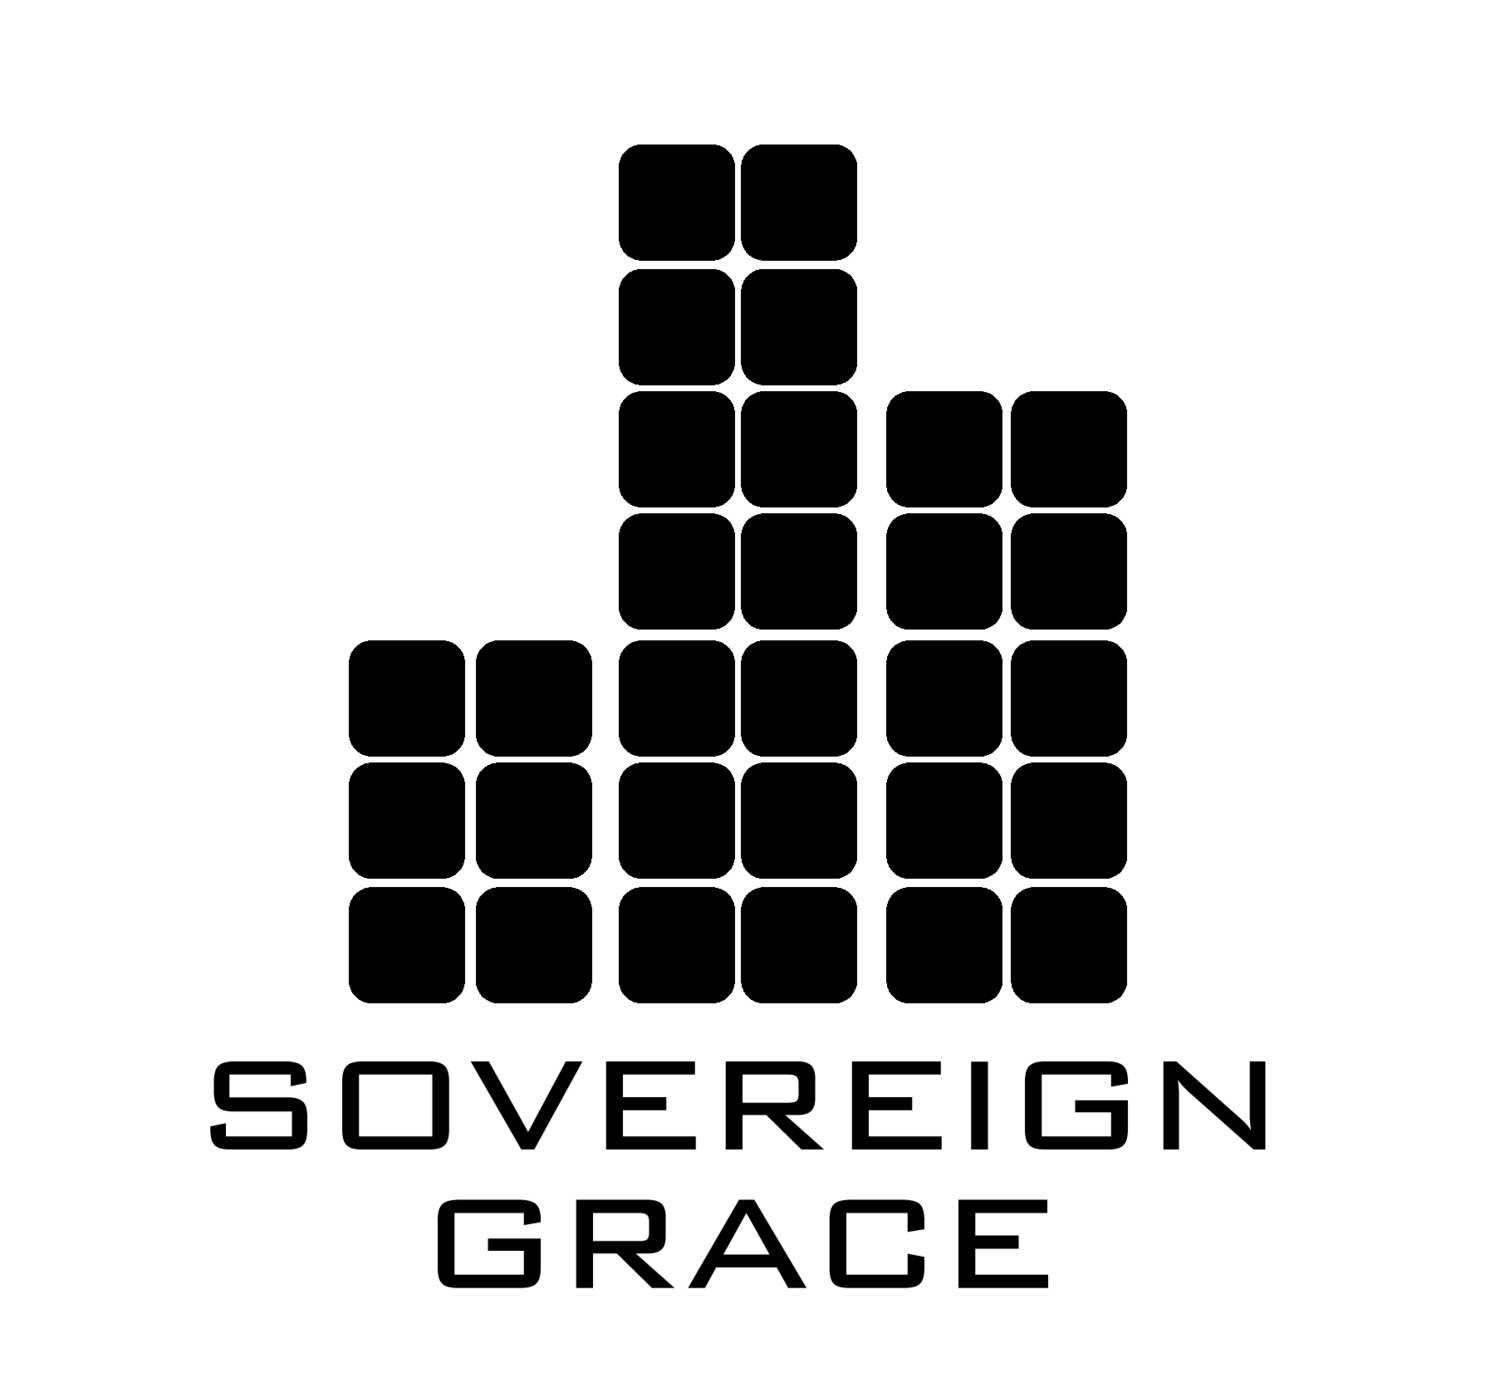 SOVEREIGN GRACE CHURCH LOS ANGELES